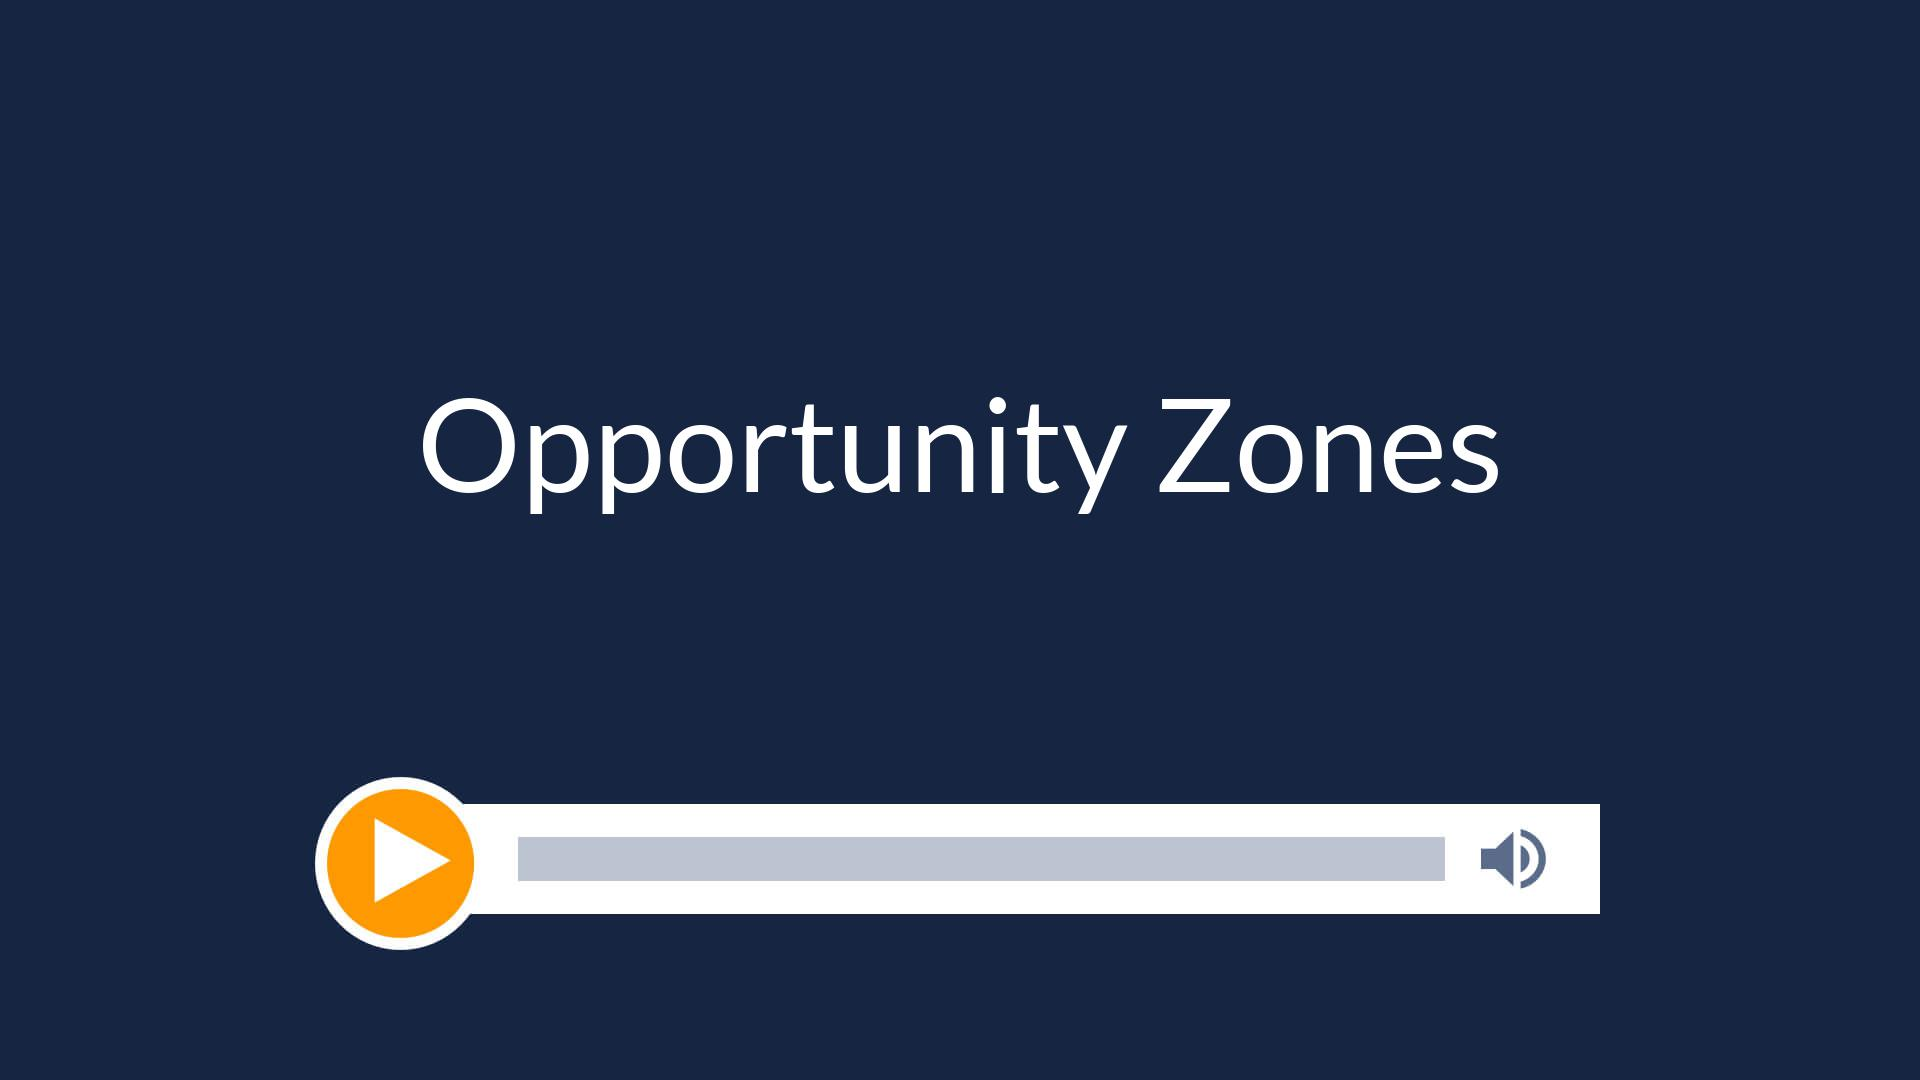 All About Opportunity Zones